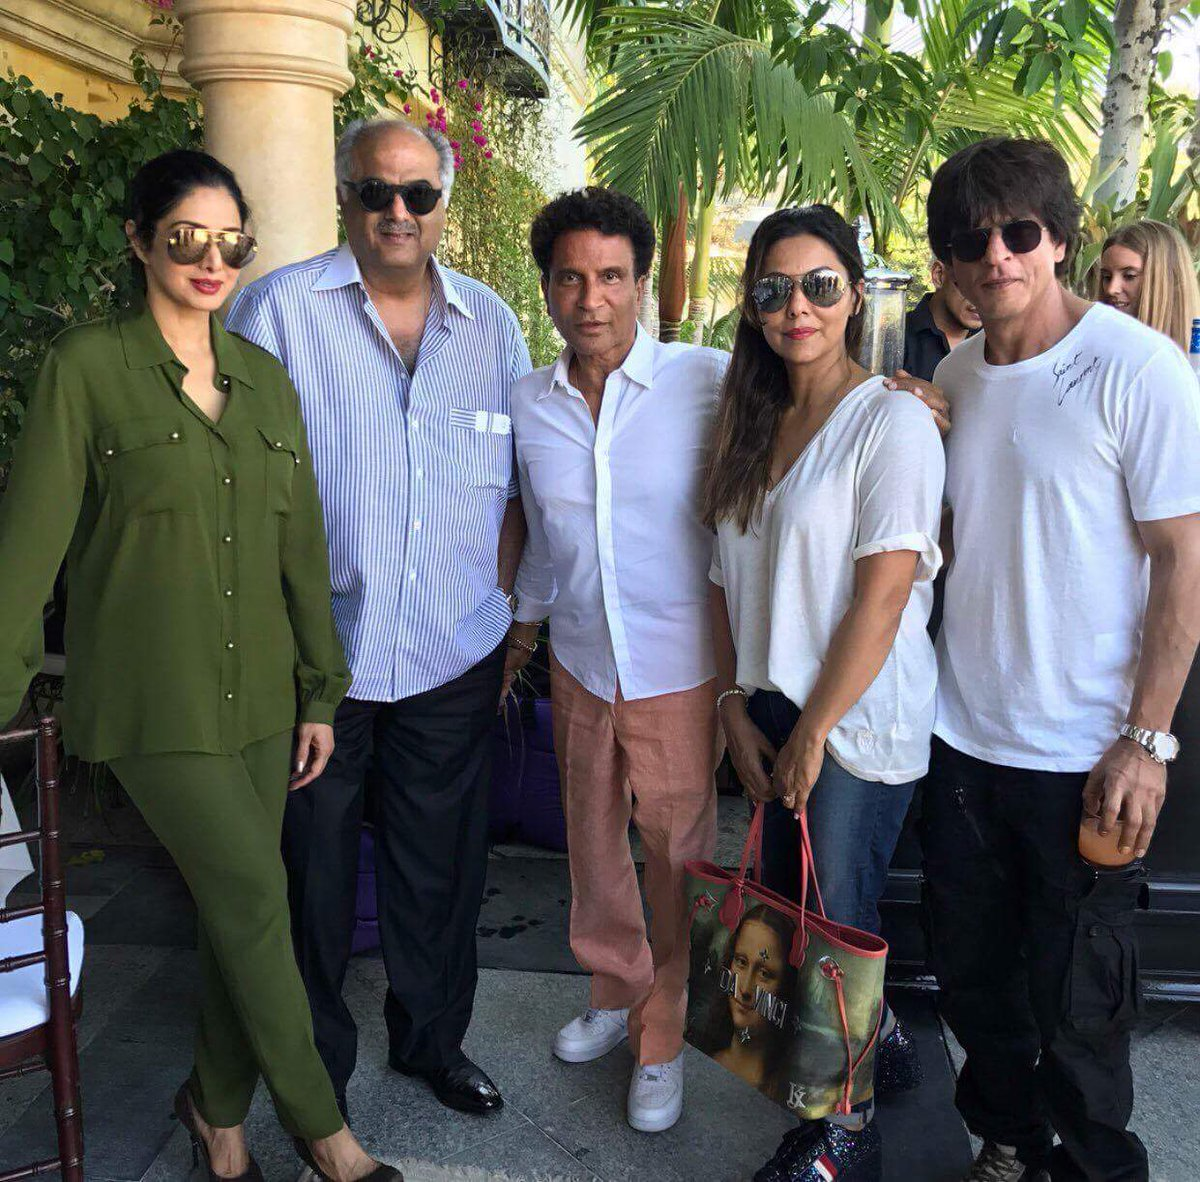 When SRK meets #Sridevi The Queen of cinema @SrideviBKapoor the King of #Bollywood @iamsrk in LA. Wish to see them soon together in a film <br>http://pic.twitter.com/H8FGp2oP0N